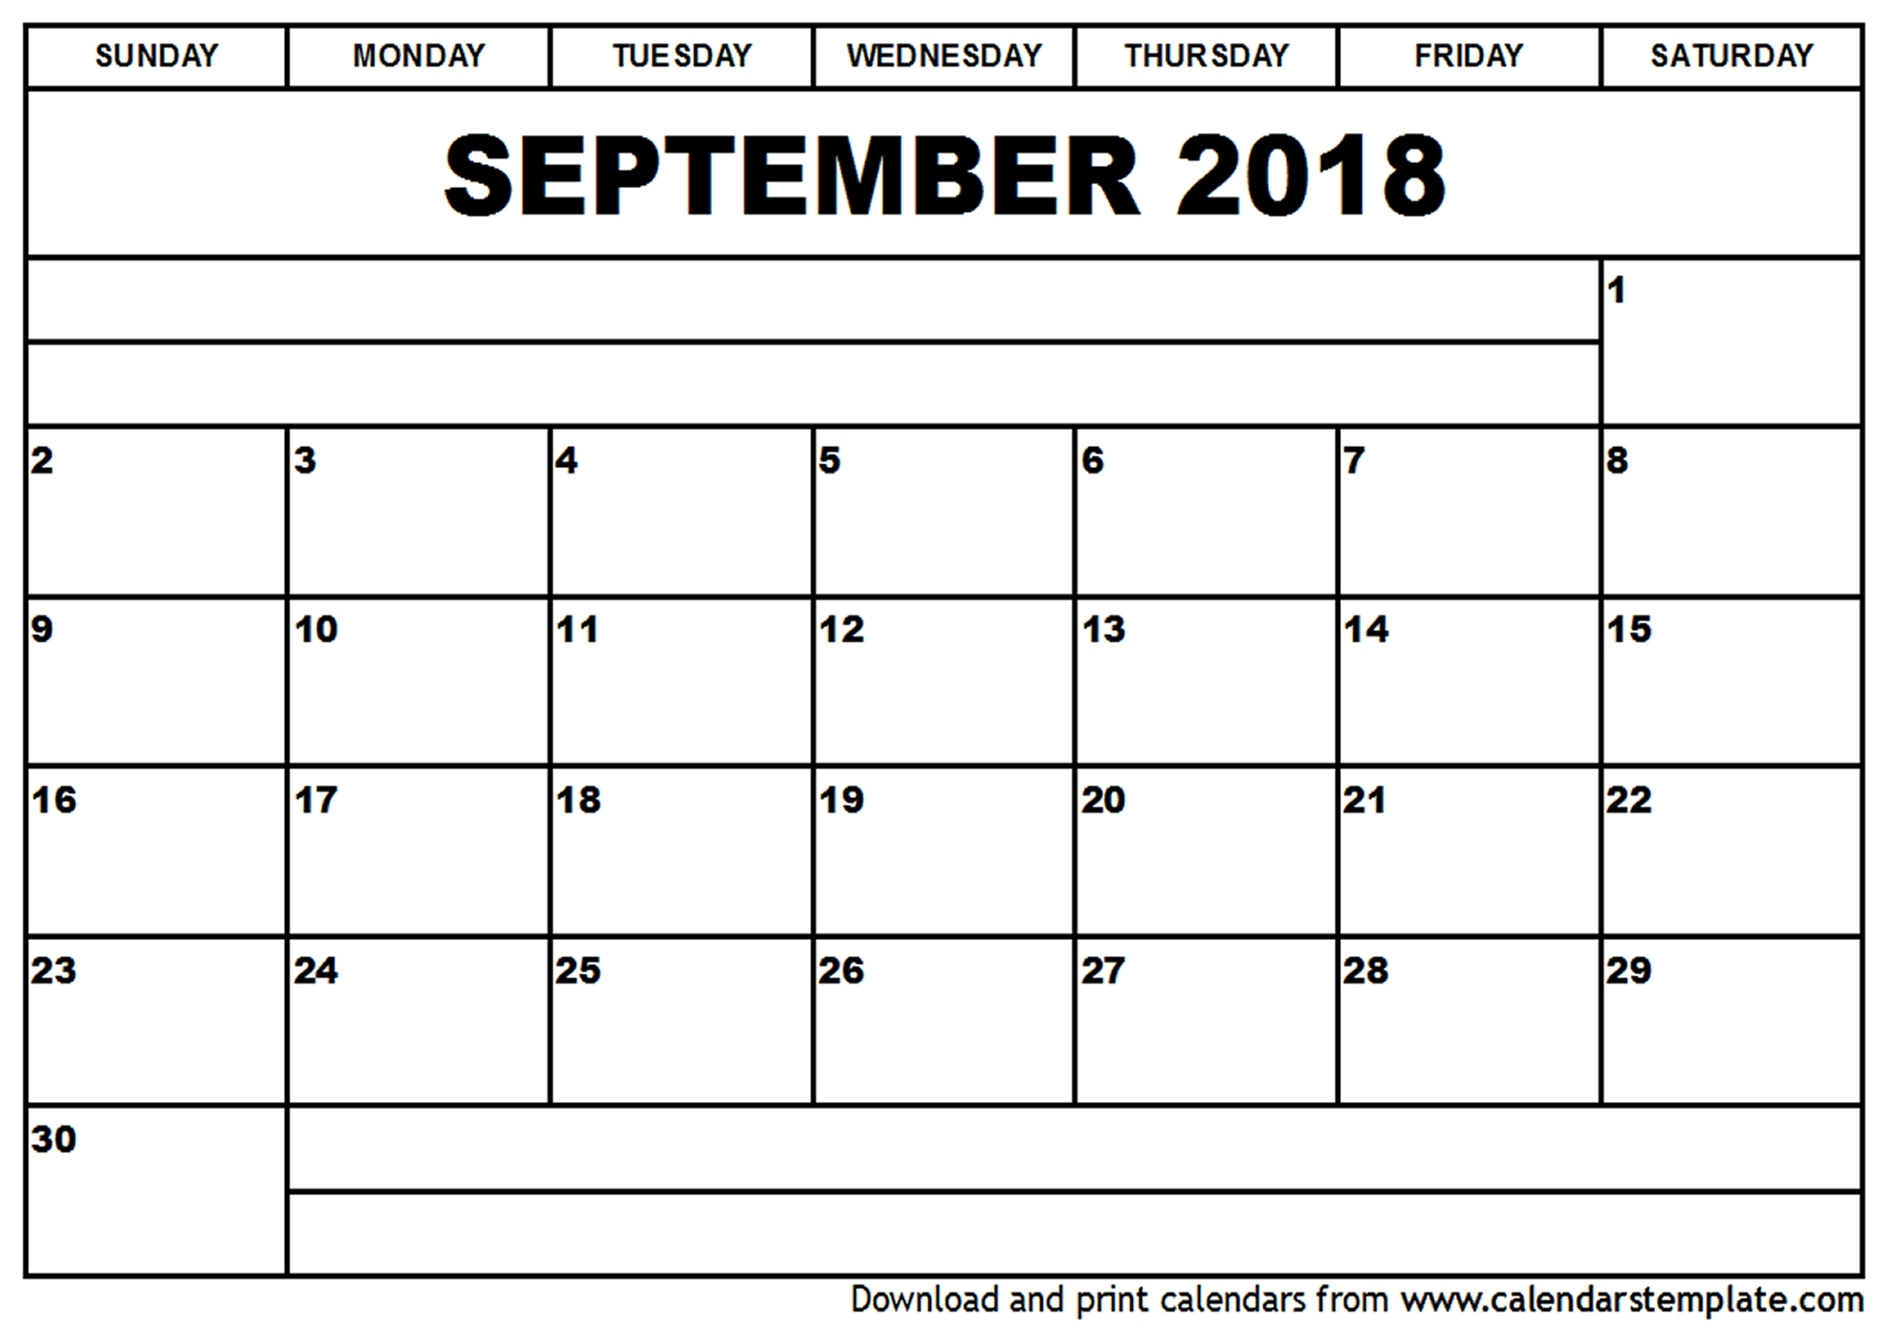 Calendar September 2018 Printable - Printable Calendar & Birthday Cards pertaining to Print Calendar Month Of September